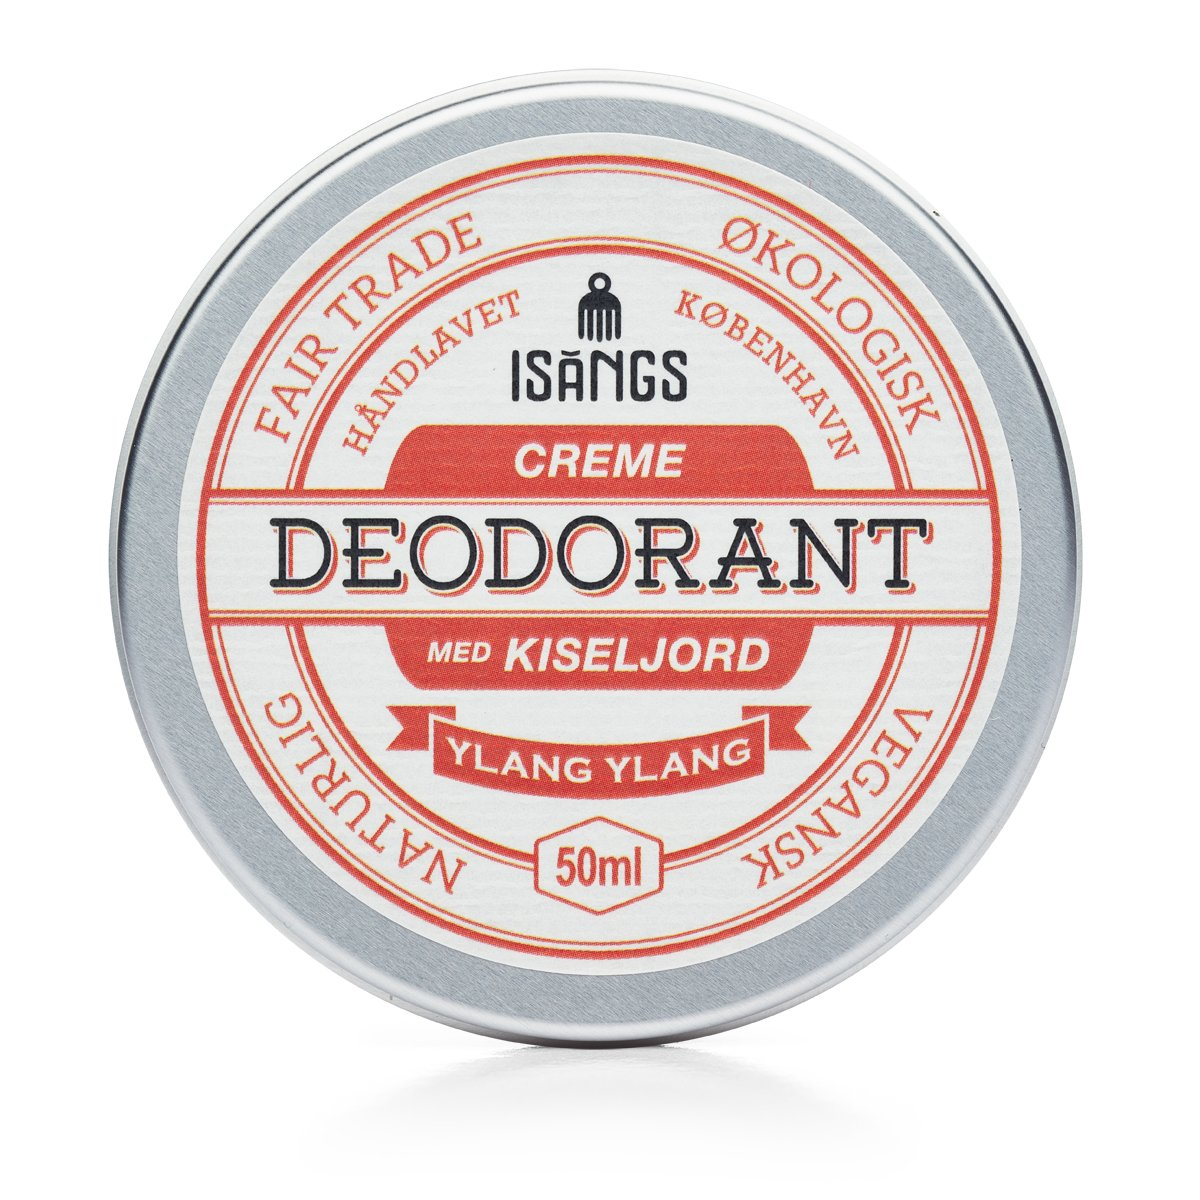 CREAM DEODORANT WITH SILICON SOIL